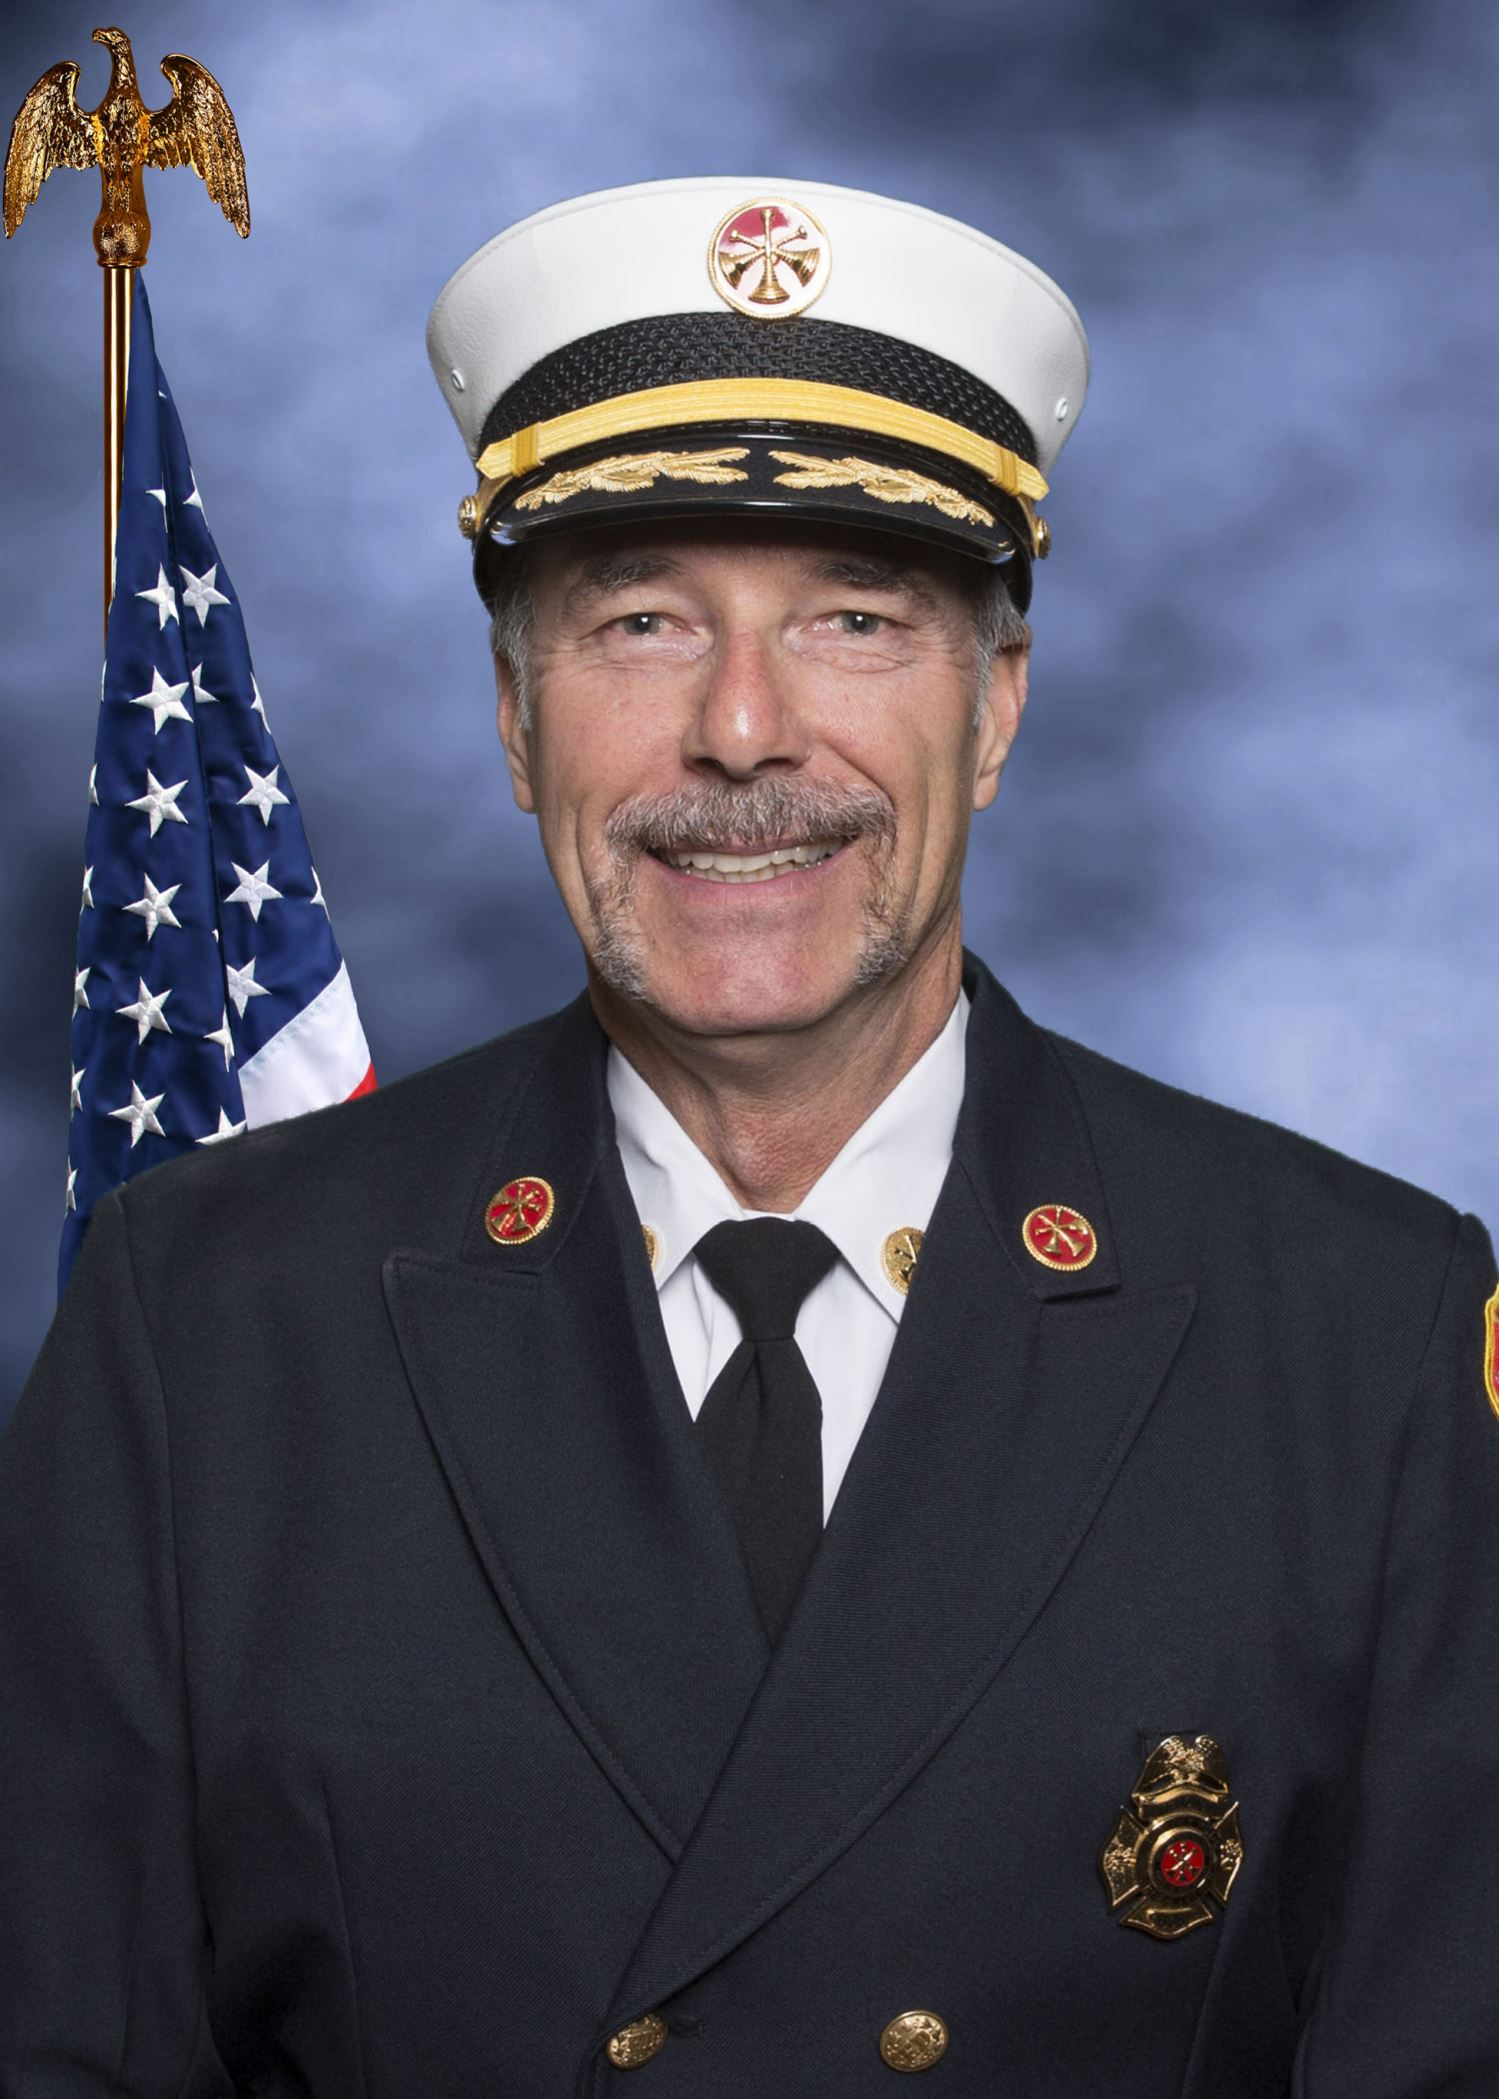 Batt. Chief Dave Patterson